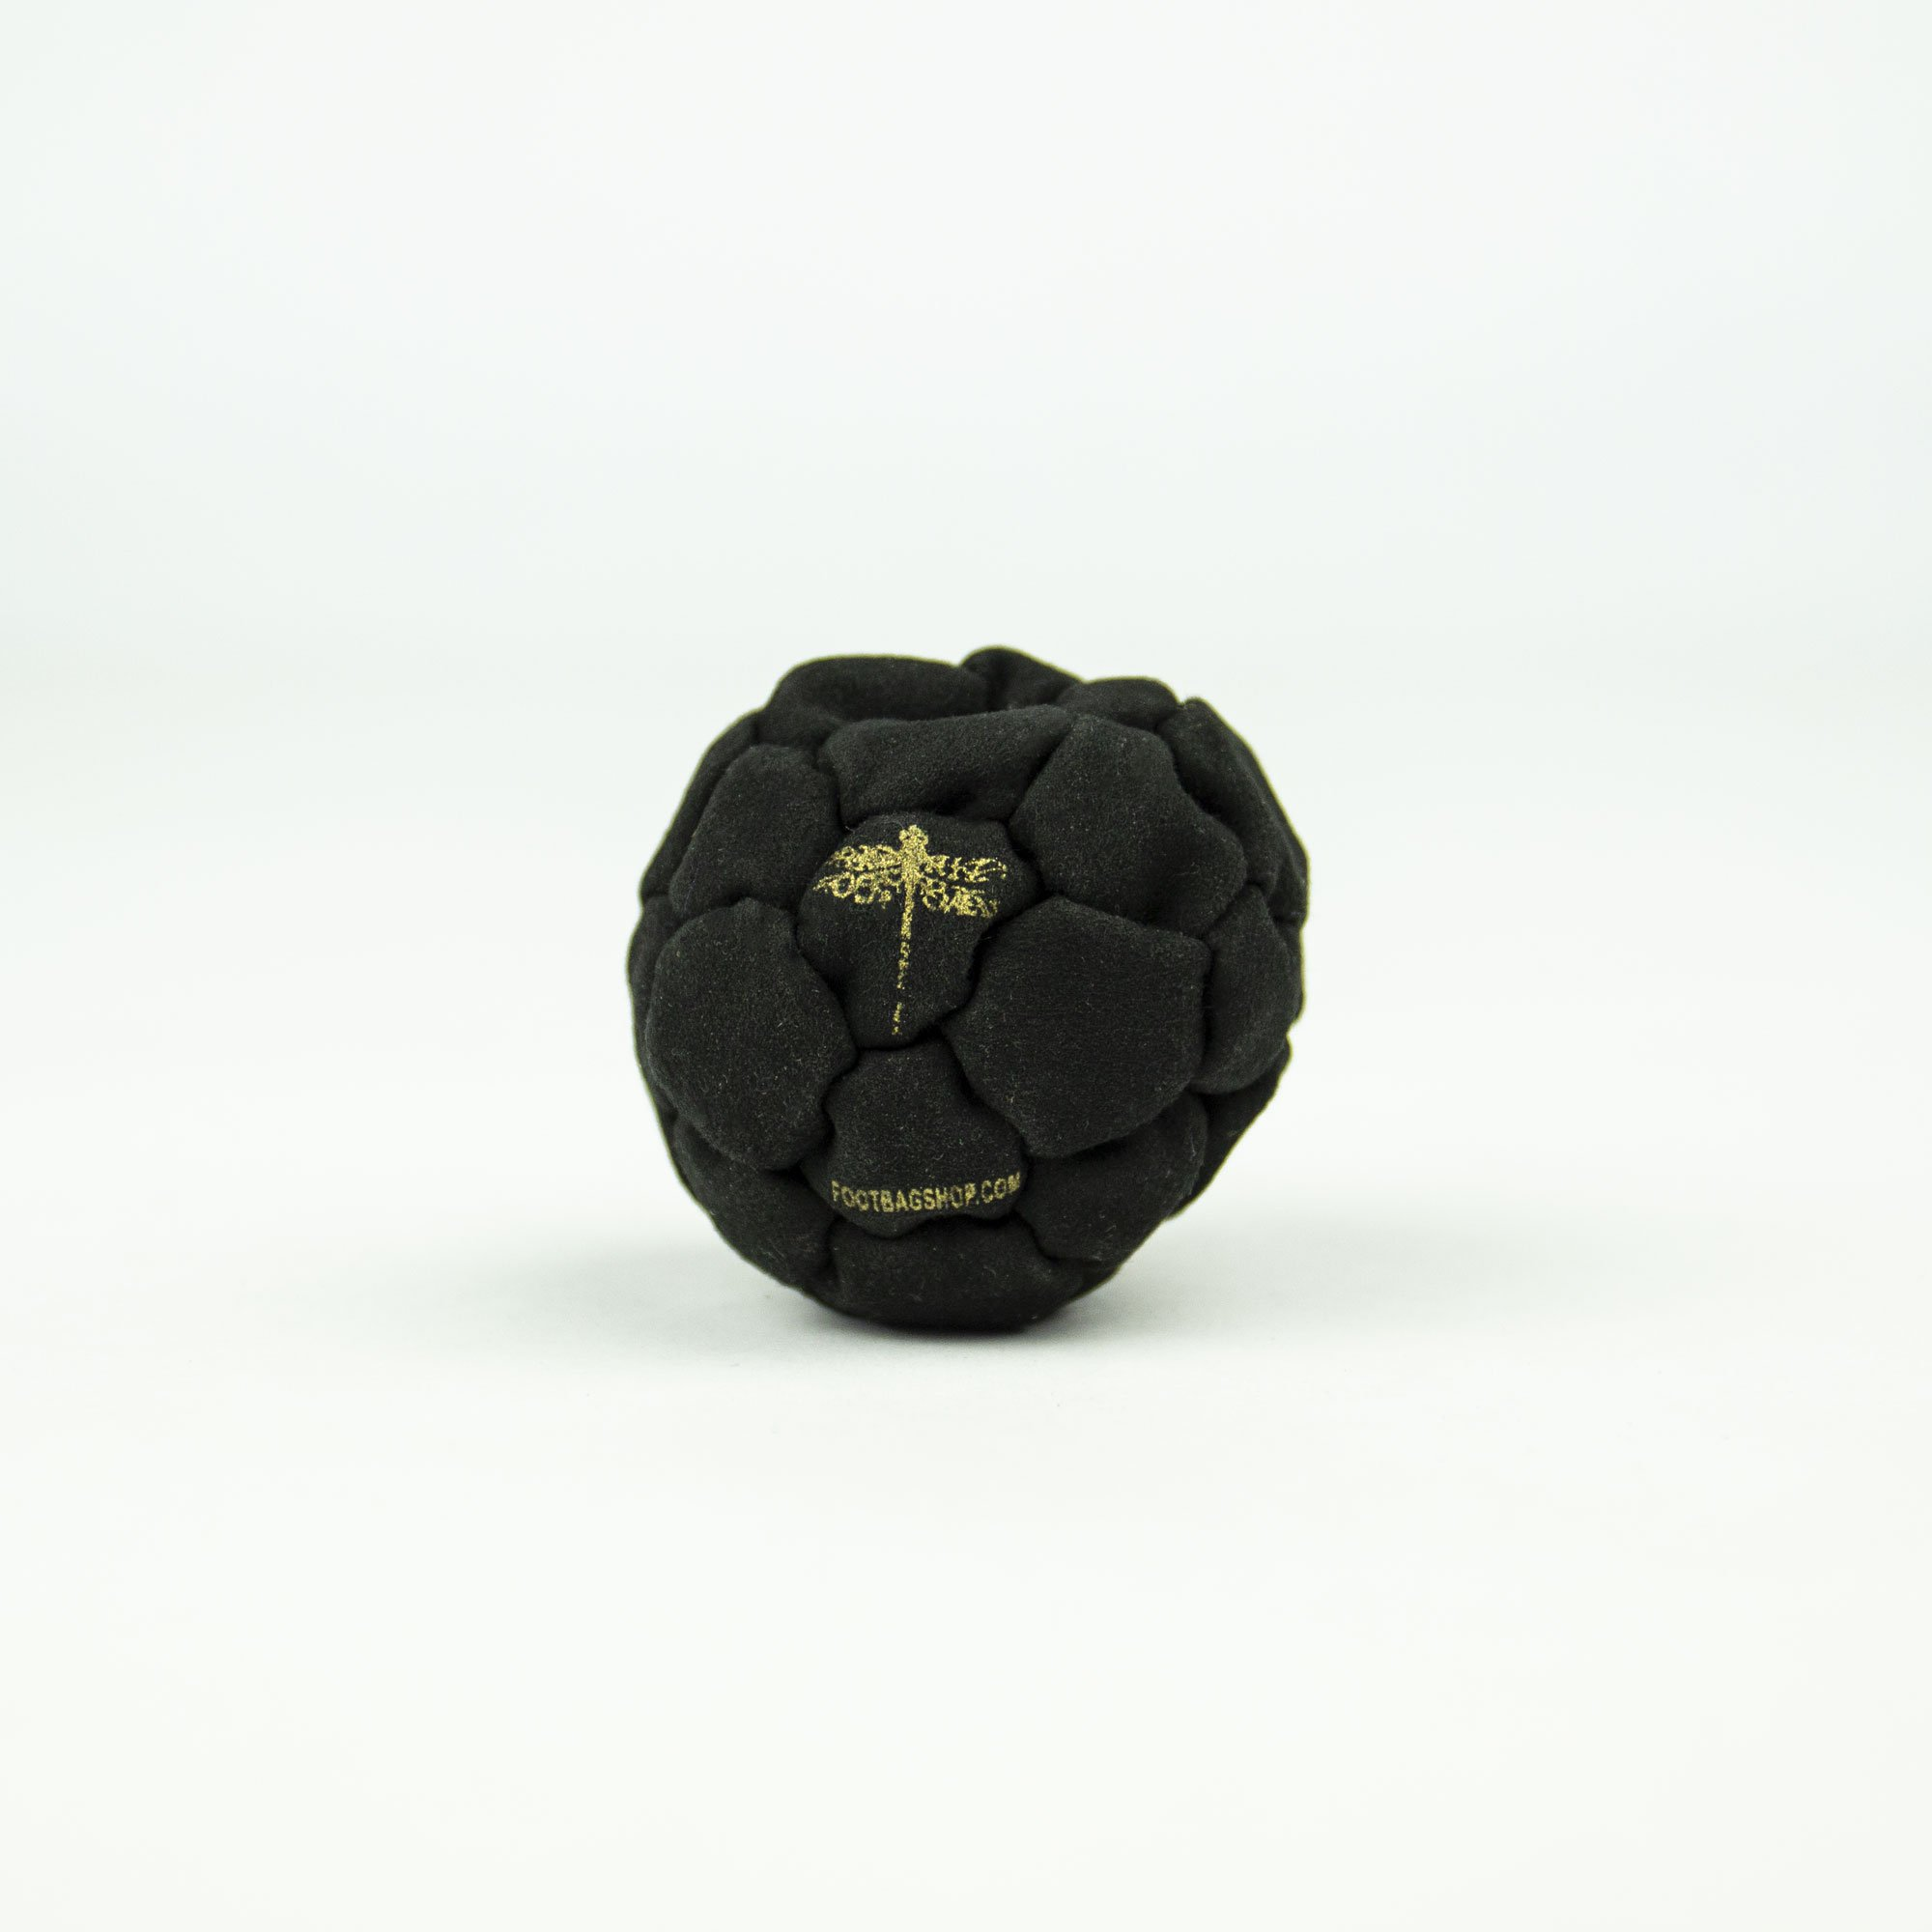 Dragonfly Footbags Mini Midnight 32 Panel Metal Filled Proseries (Hacky Sack)